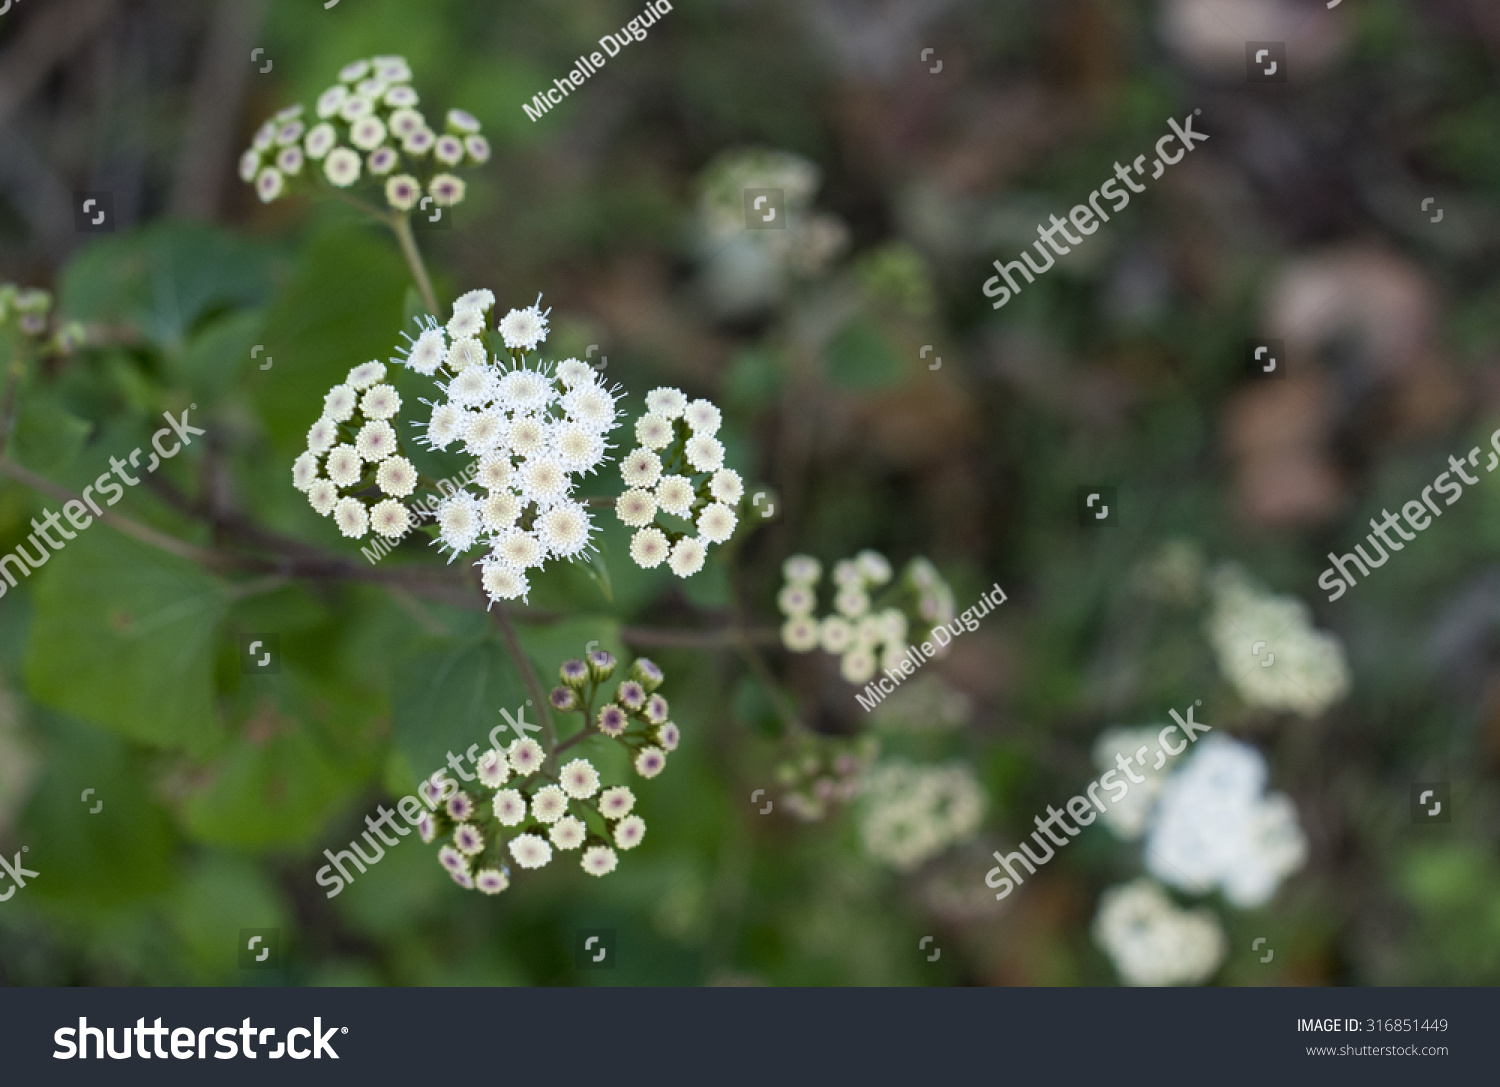 White Tiny Flowers Stock Photo Edit Now 316851449 Shutterstock